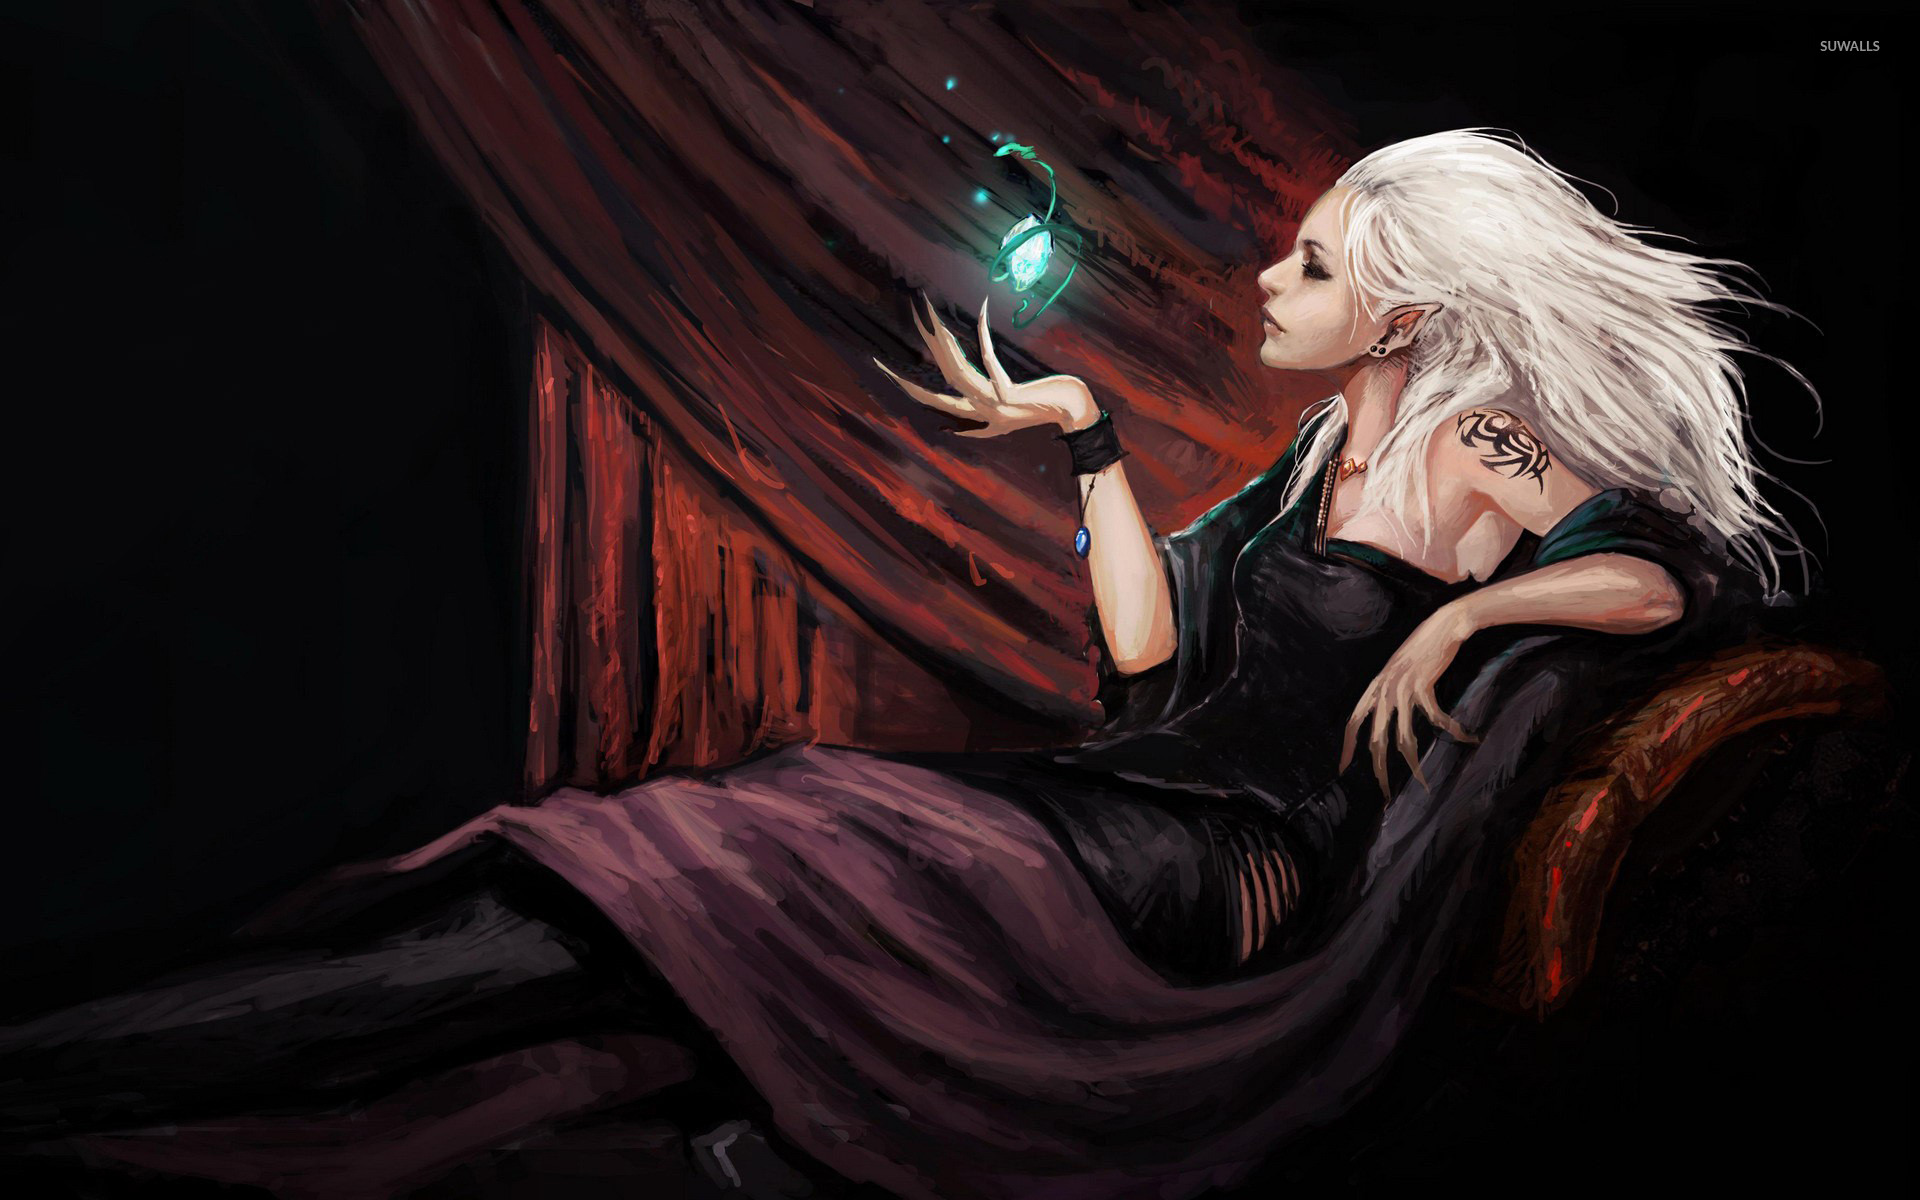 Elf witch wallpaper   Fantasy wallpapers   17581 1920x1200